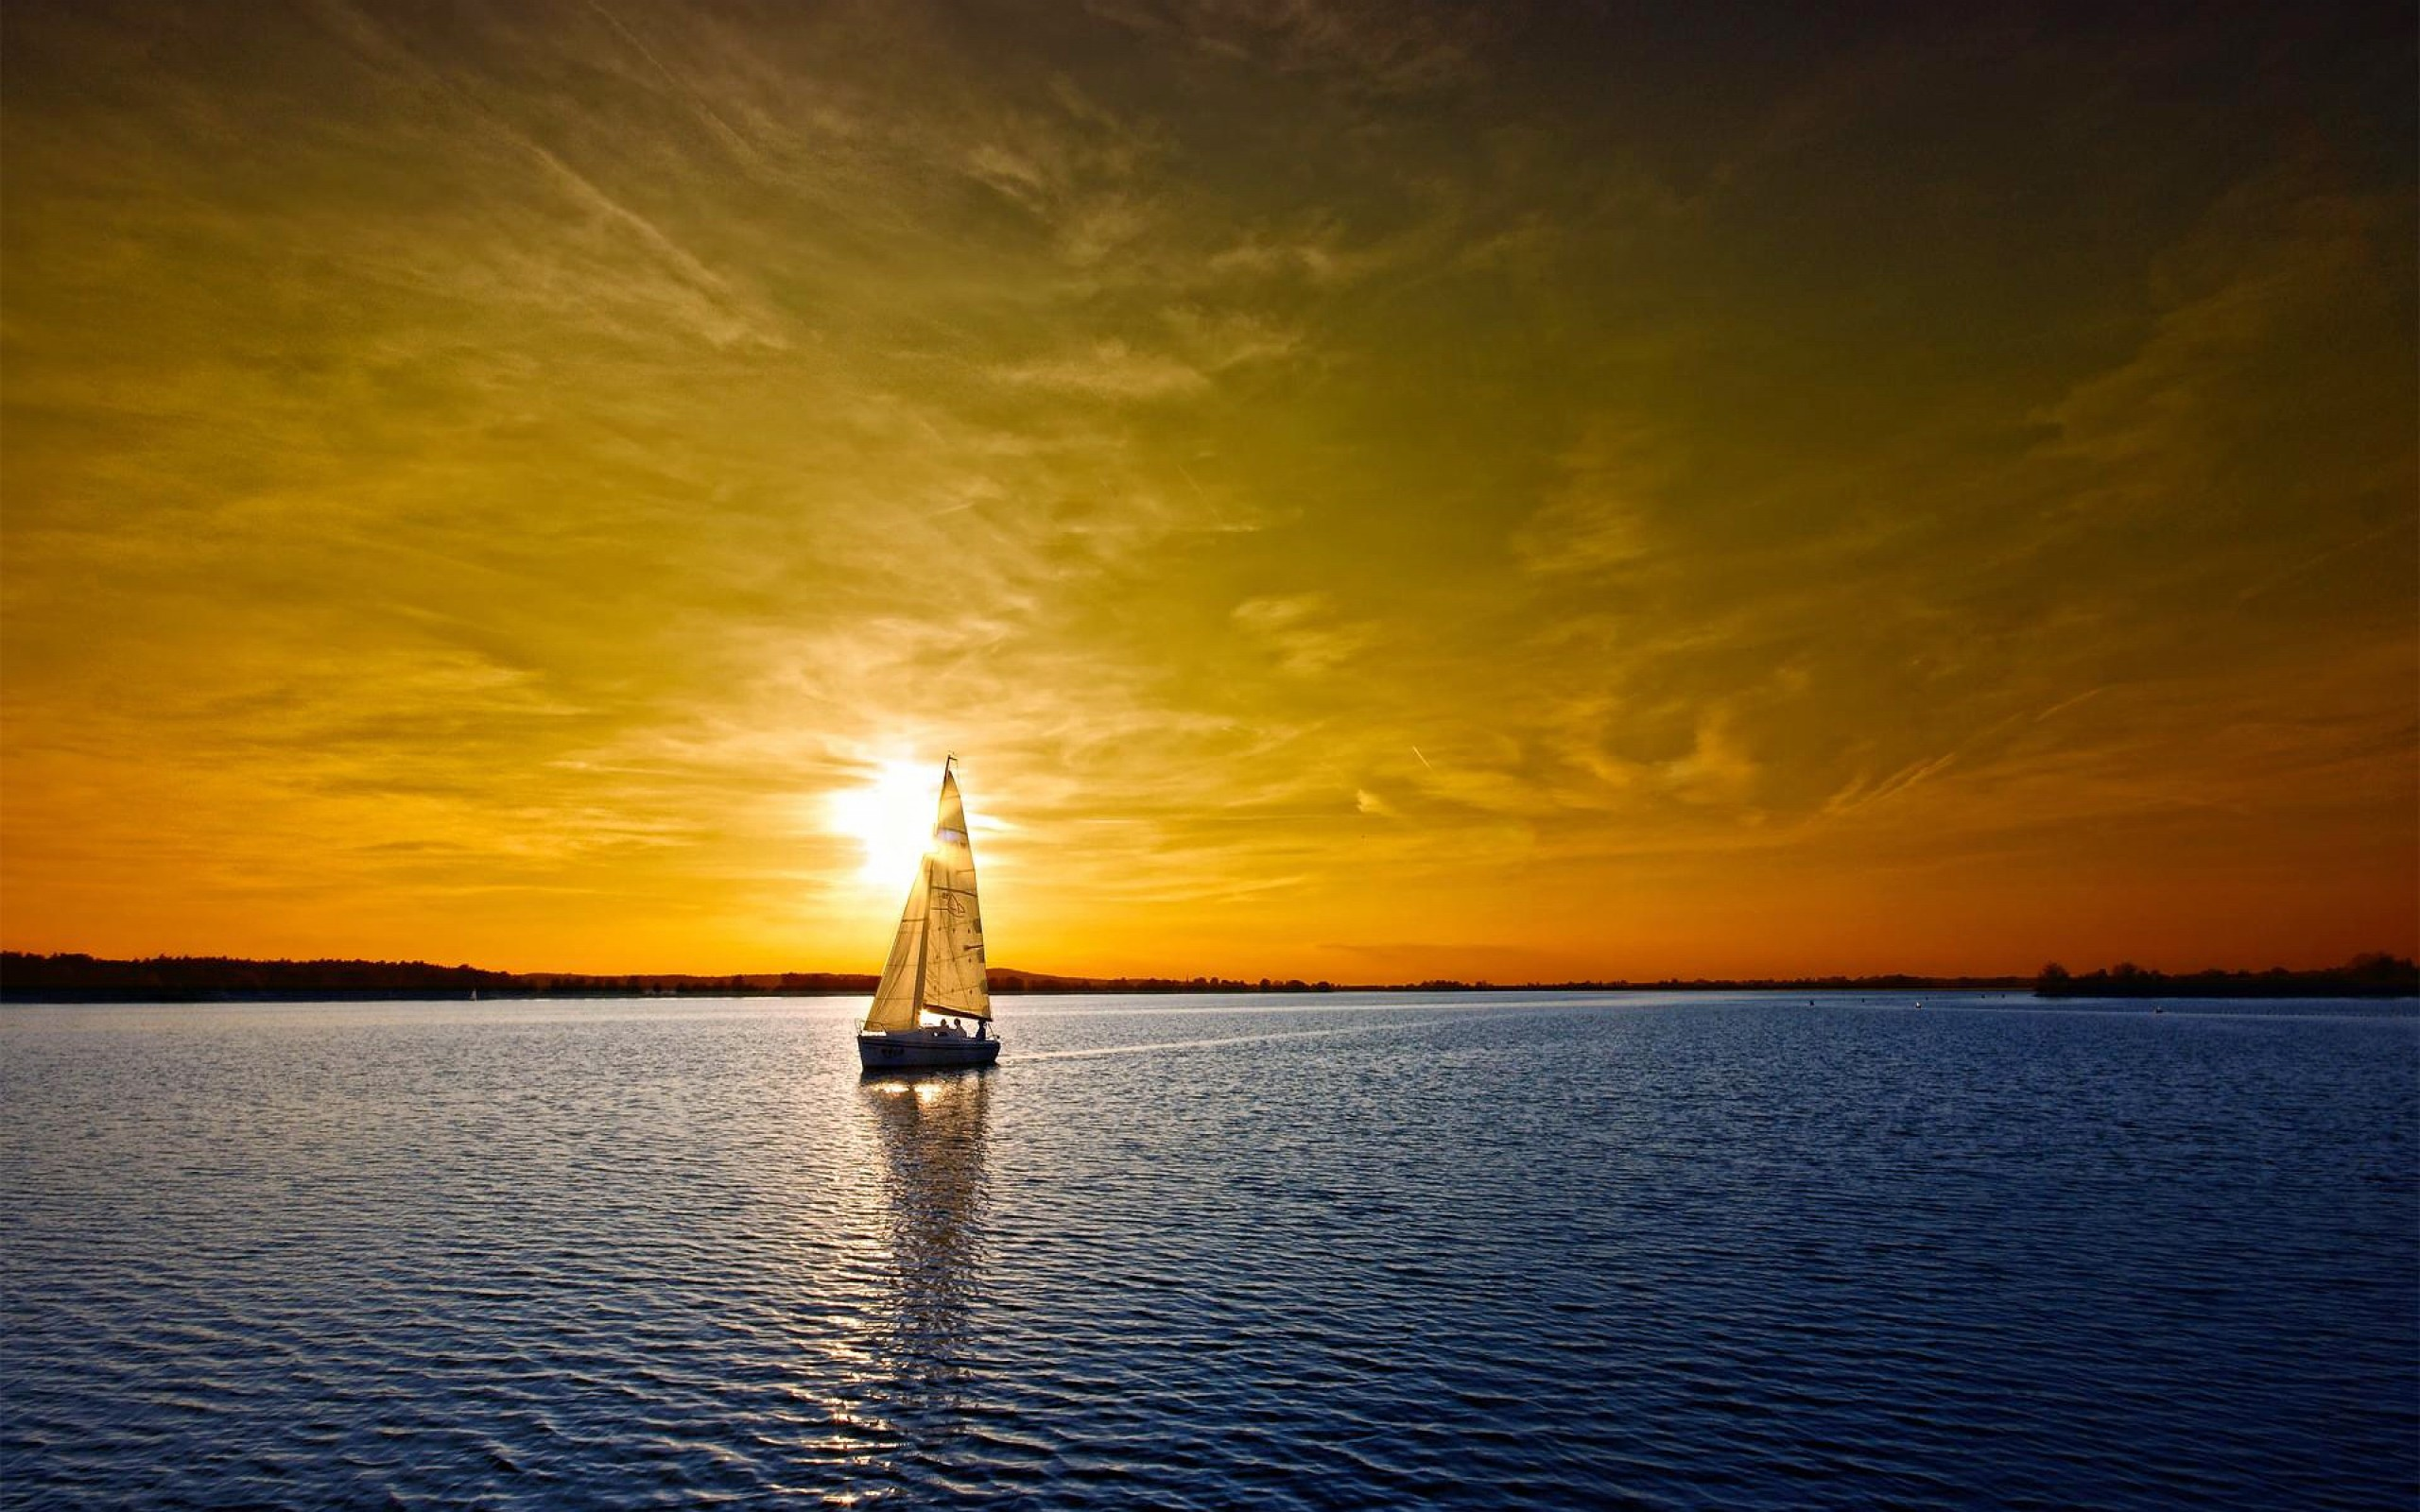 Daily Wallpaper: Sail Boat Sunset   I Like To Waste My Time